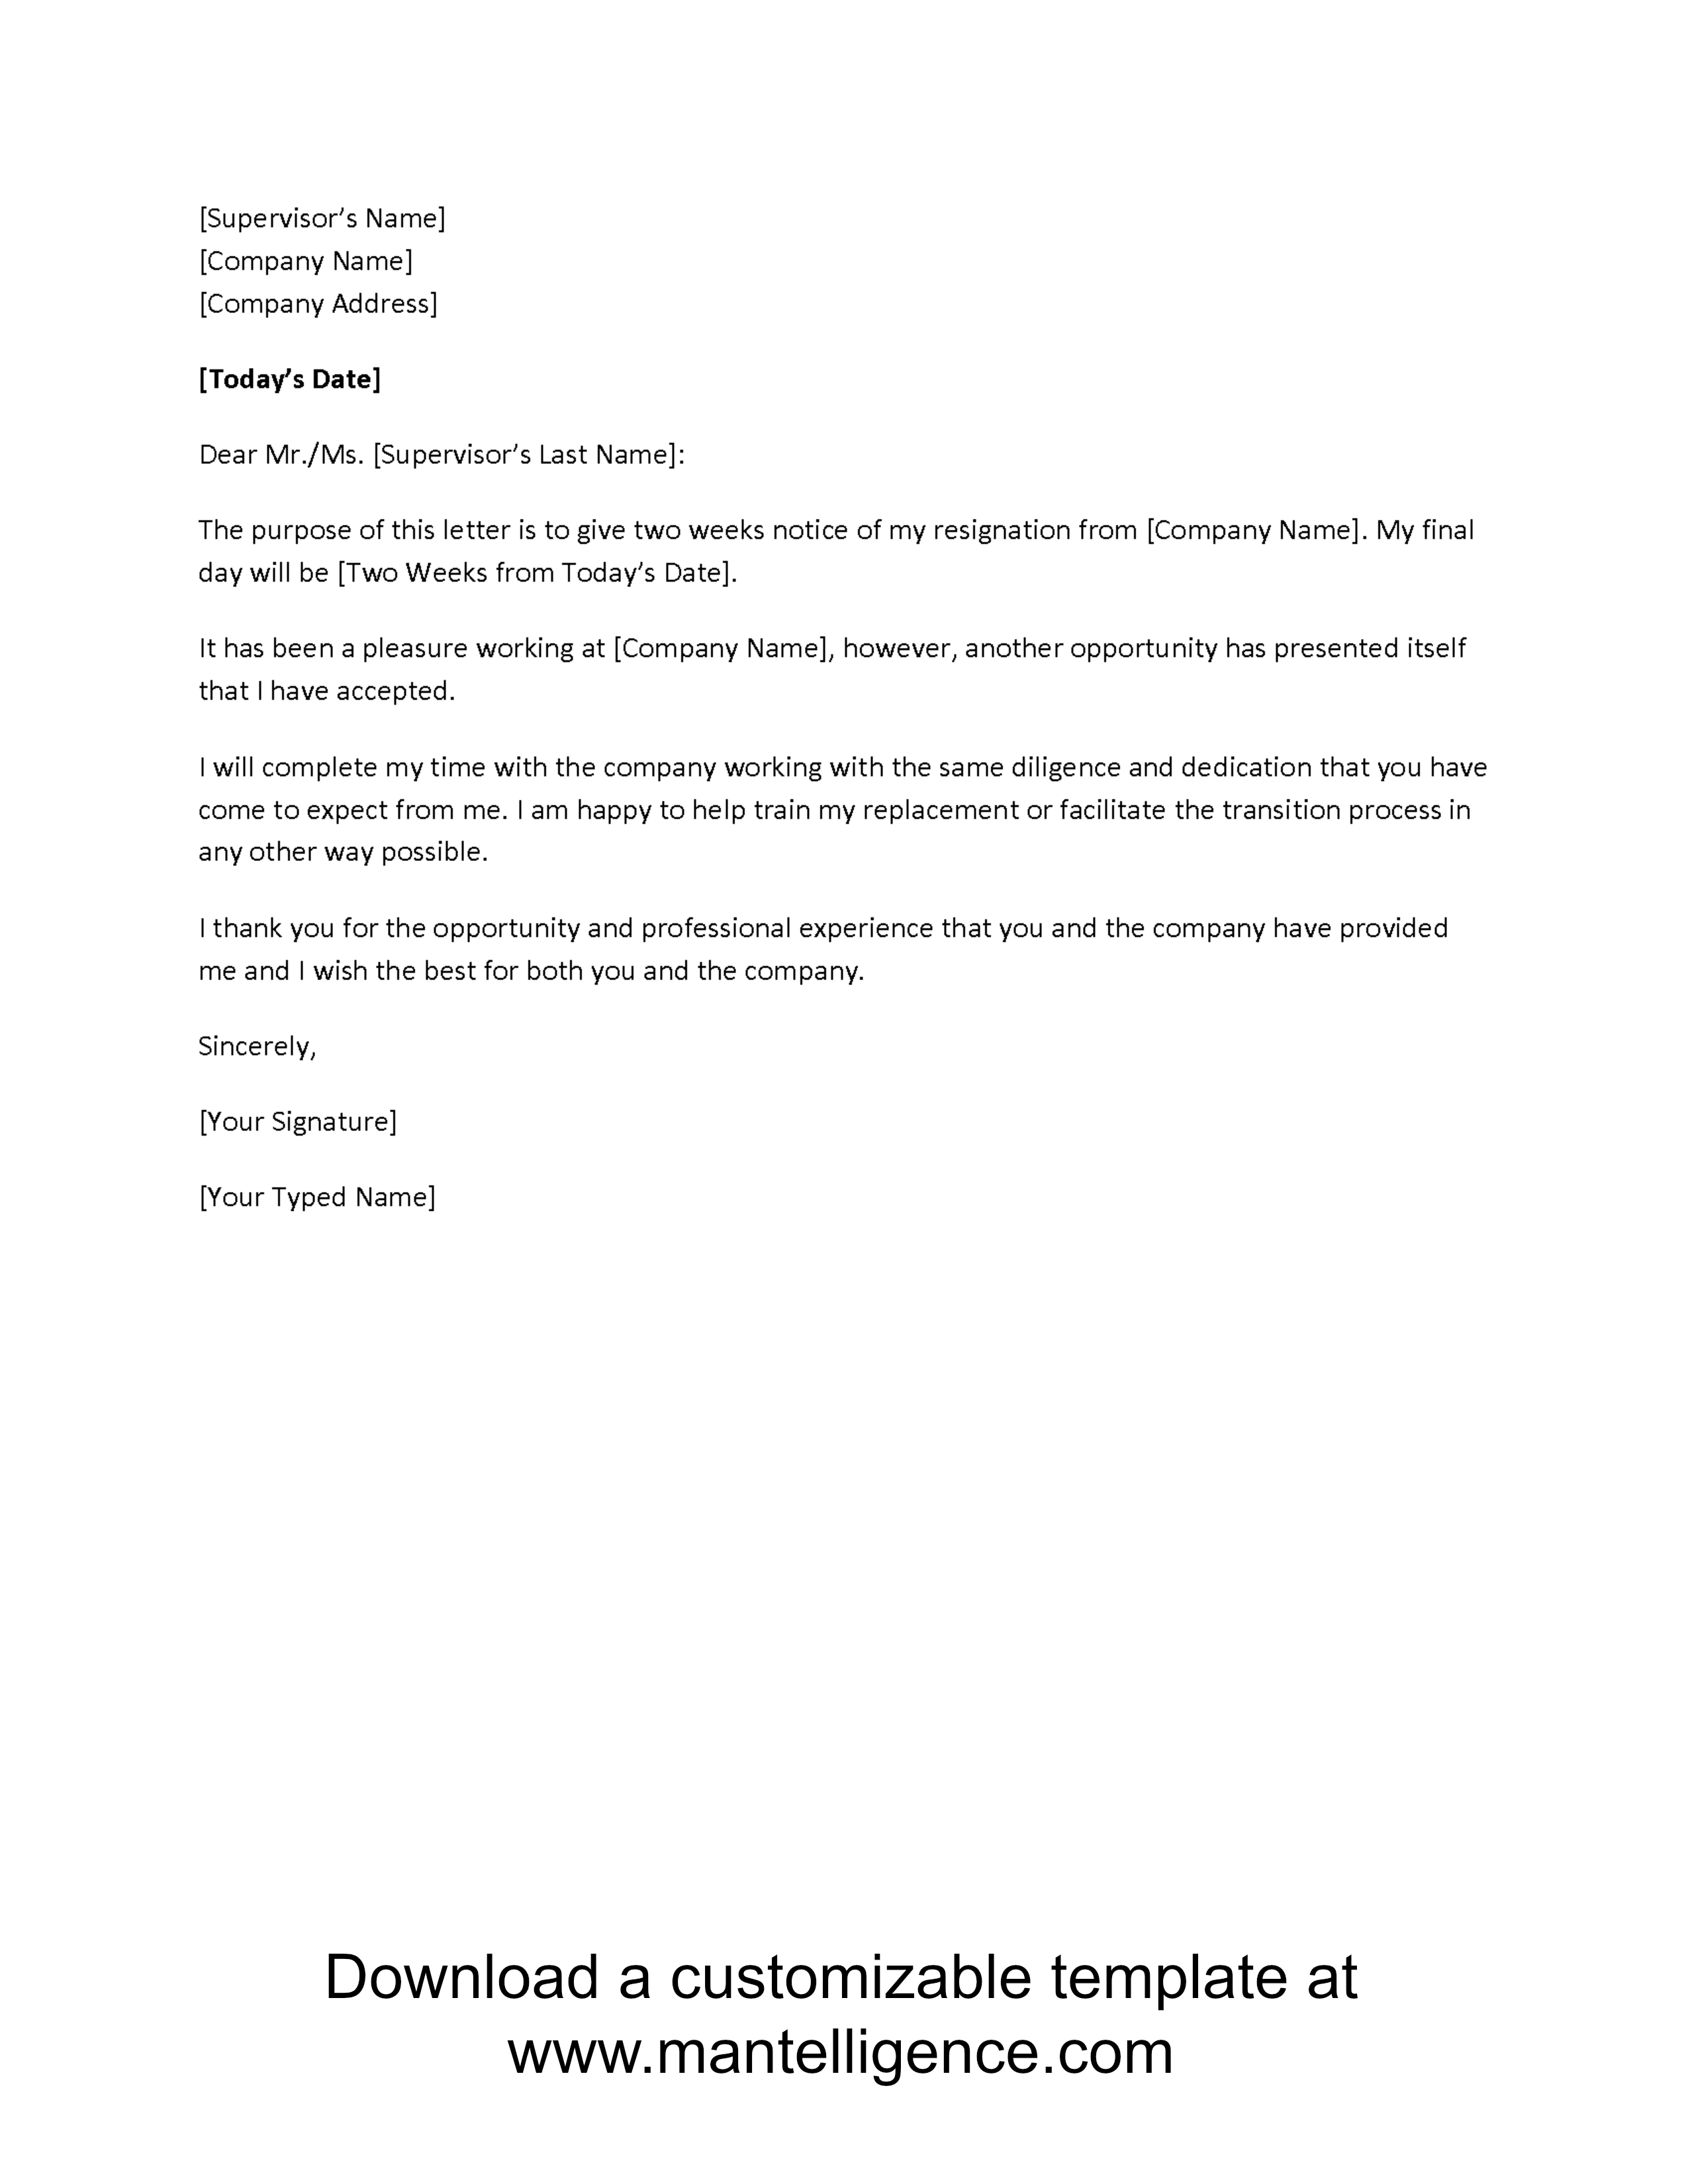 Elegant 3 Highly Professional Two Weeks Notice Letter Templates And 2 Week Notice Template